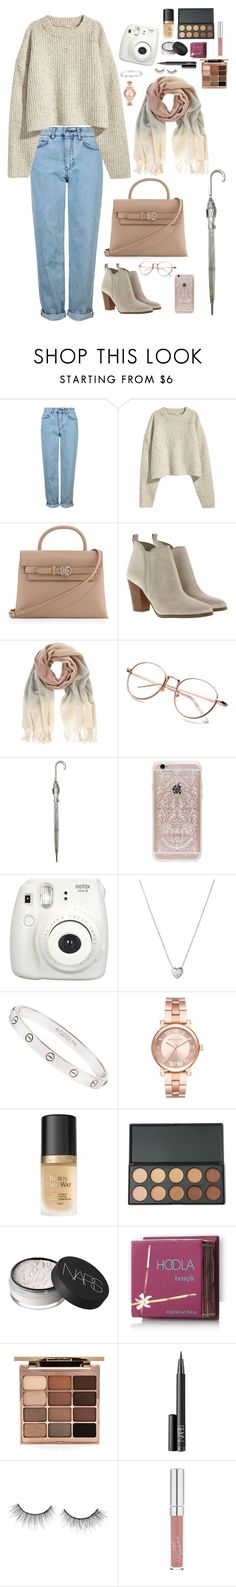 """""""Untitled #300"""" by saraxionggg on Polyvore featuring Topshop, Alexander Wang, MICHAEL Michael Kors, Mint Velvet, Fulton, Rifle Paper Co, Fujifilm, Links of London, Cartier and Michael Kors"""